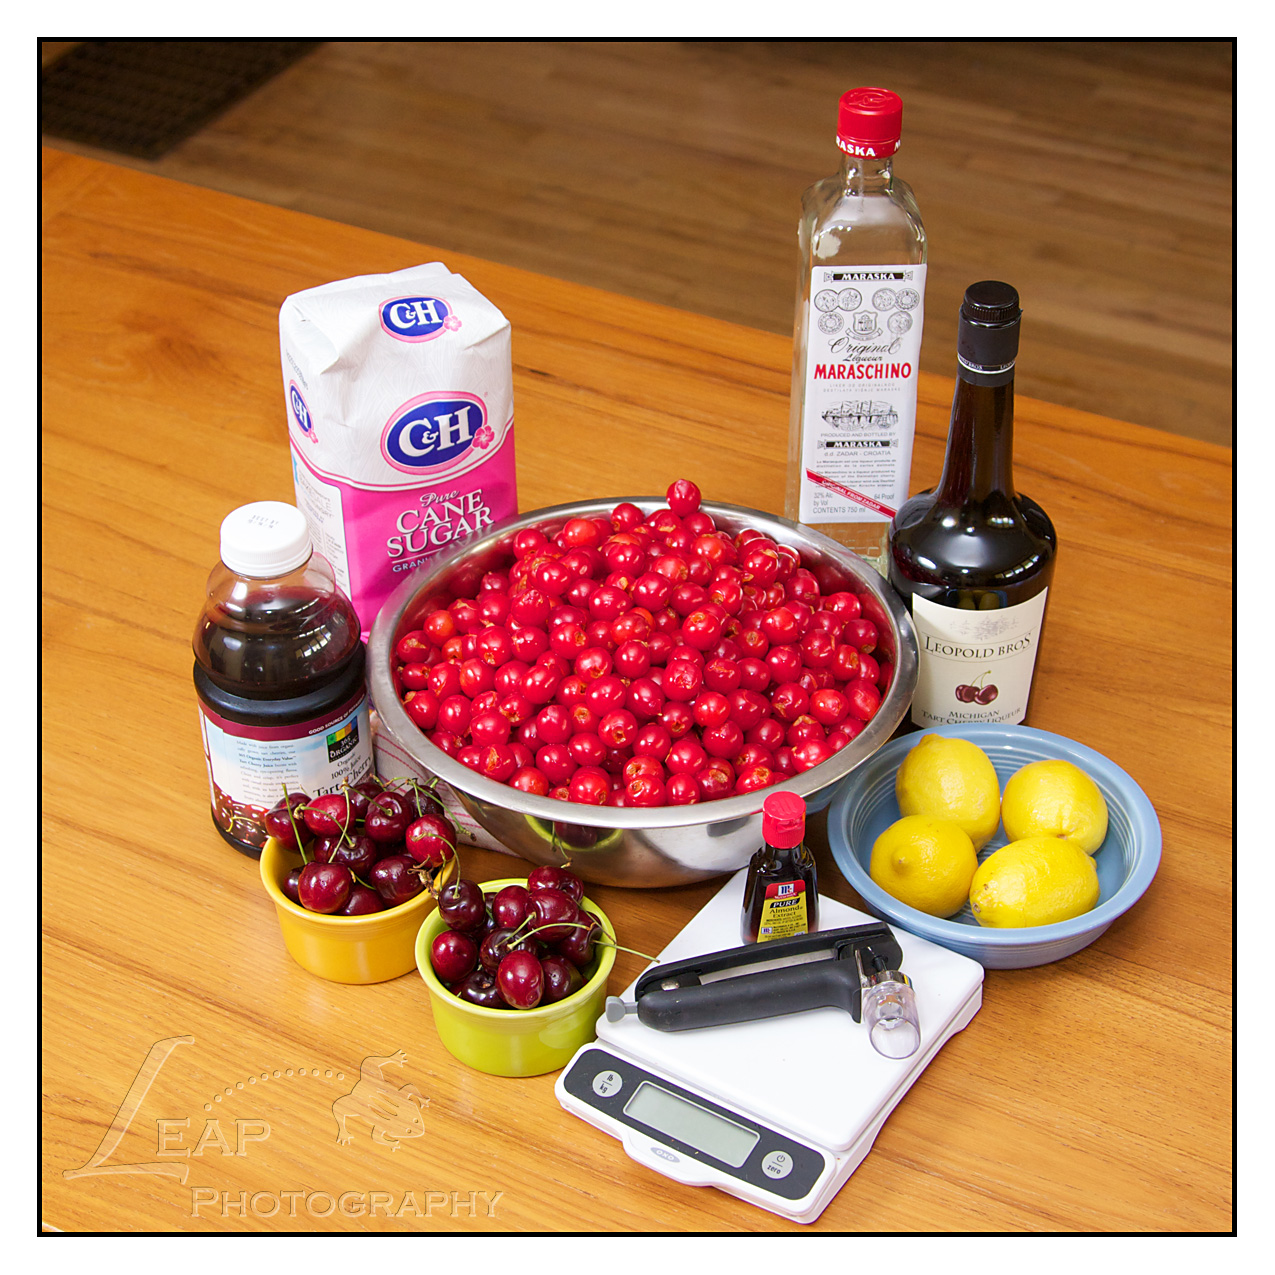 Maraschino Cherries: Home Canning Recipe